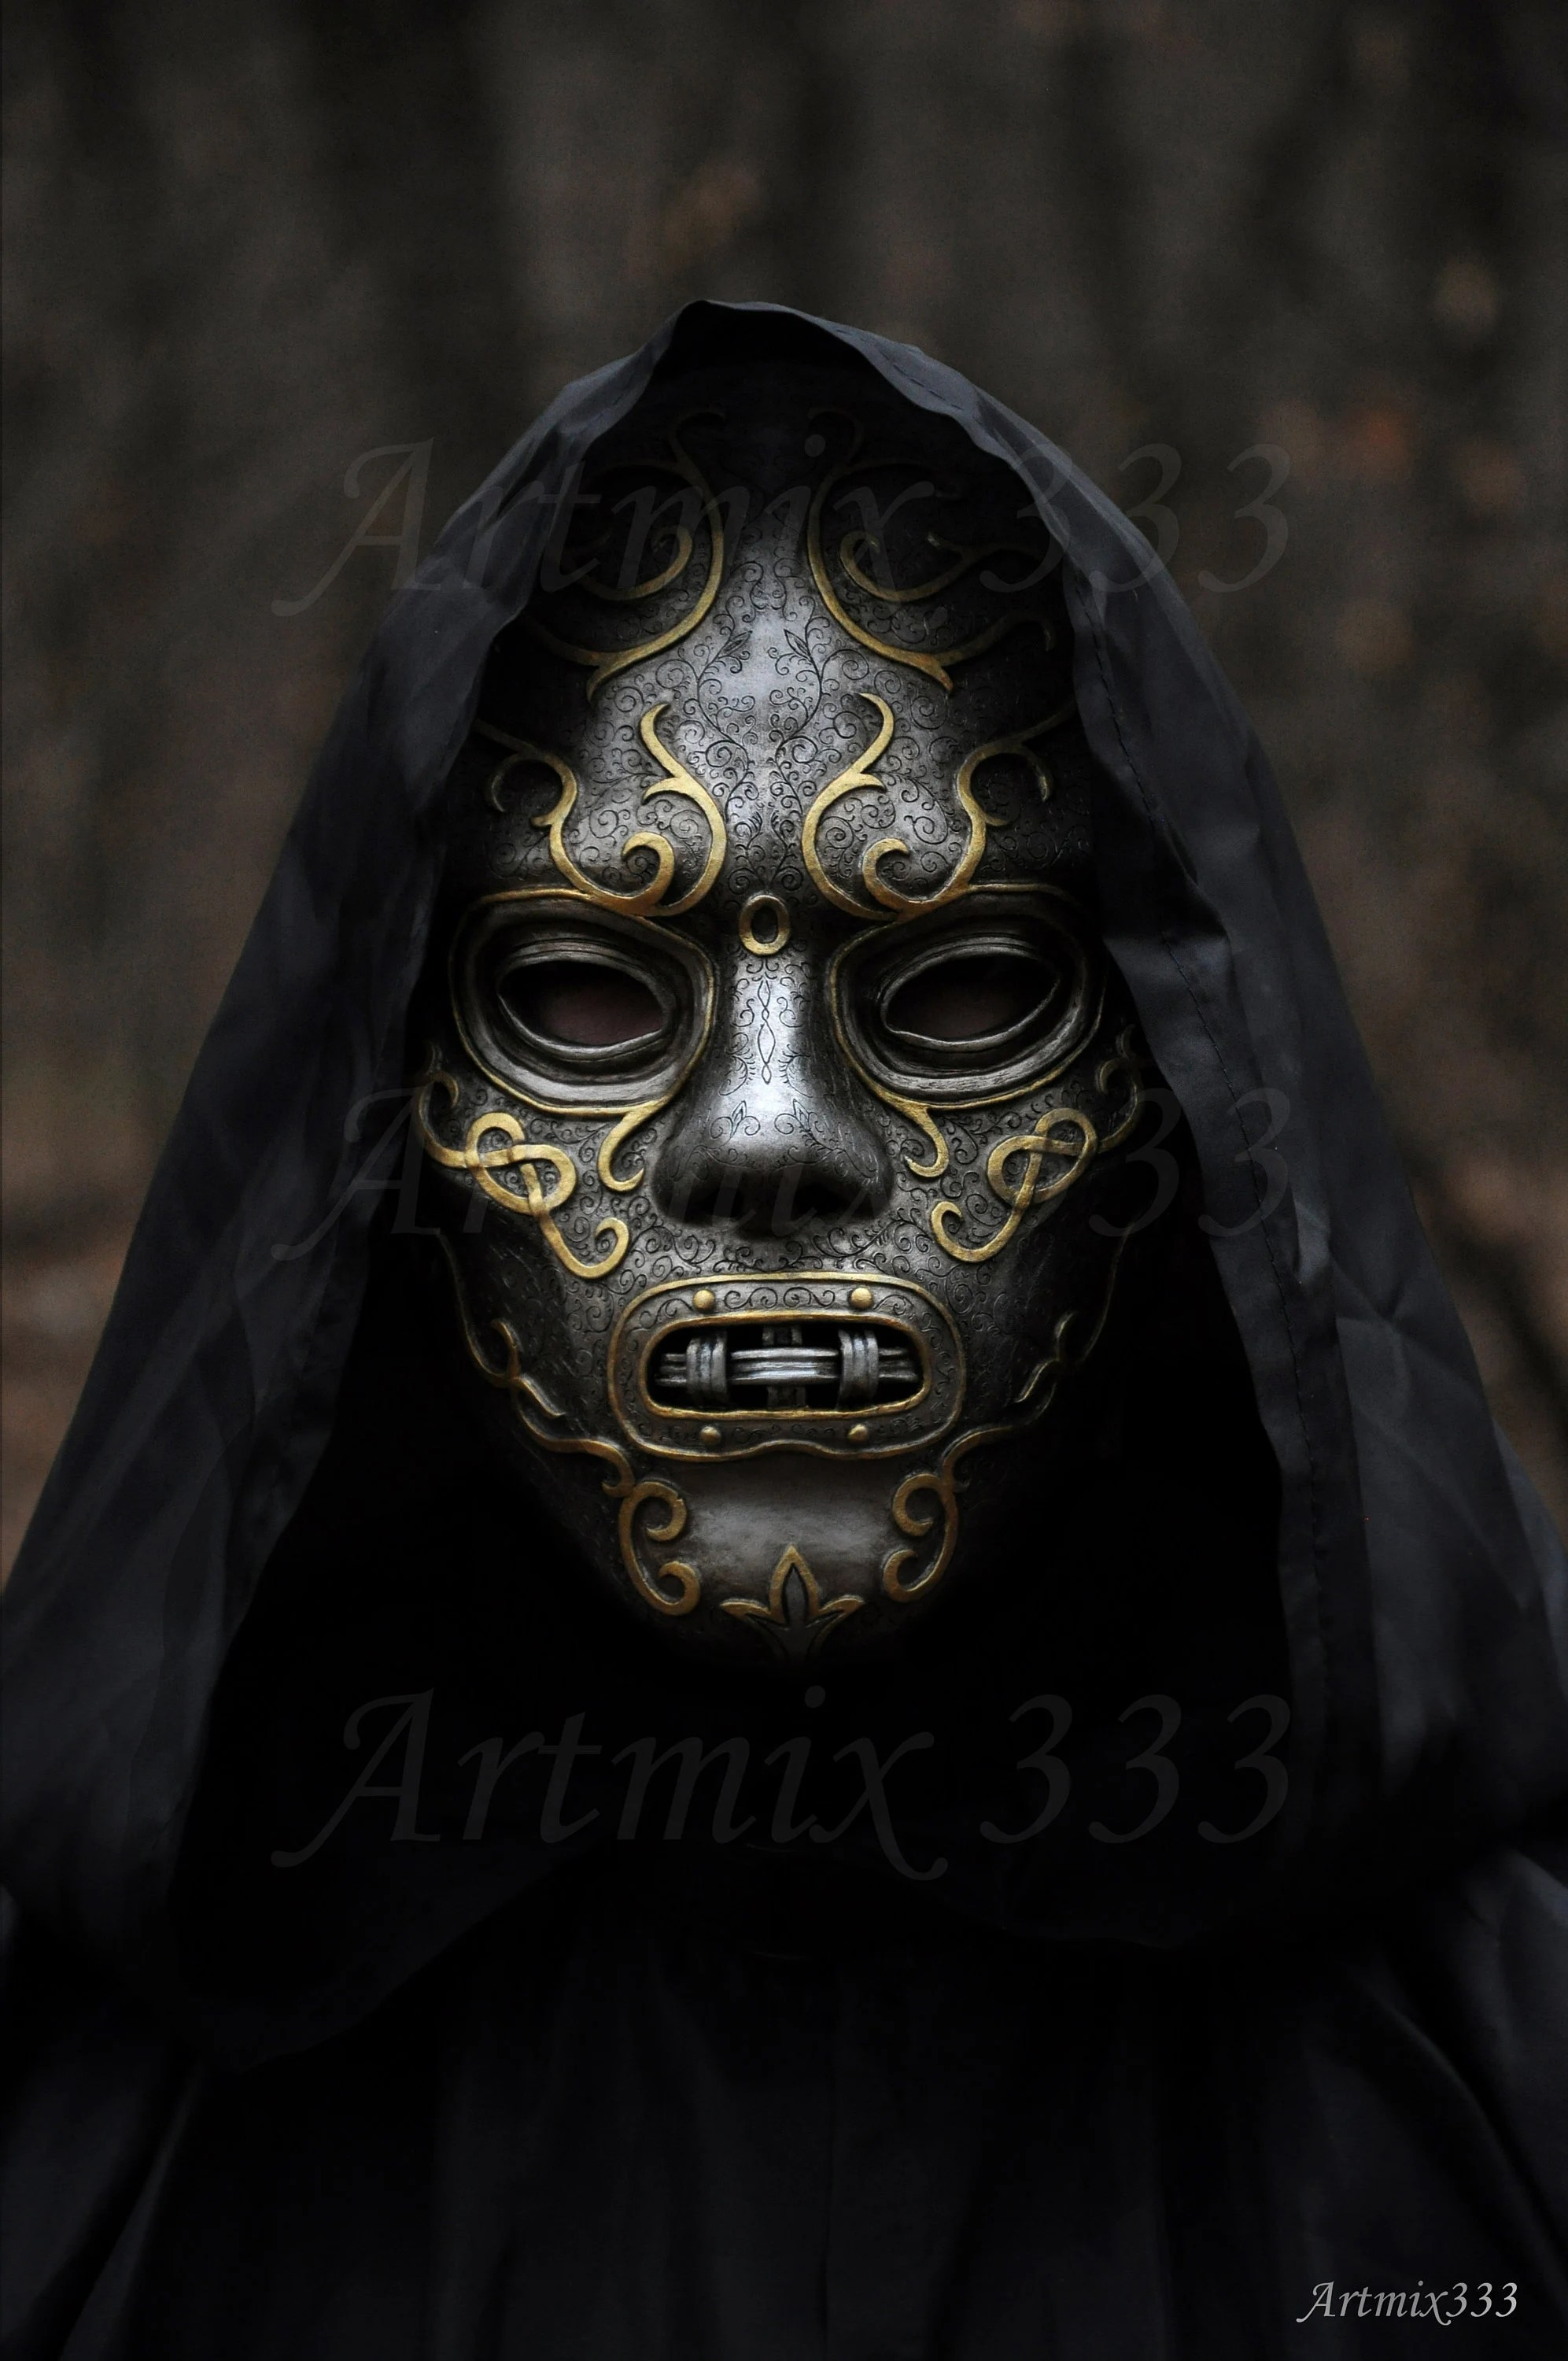 Death Eater Masks And Their Owners : death, eater, masks, their, owners, Unique, Death, Eaters, Handmade, Harry, Potter